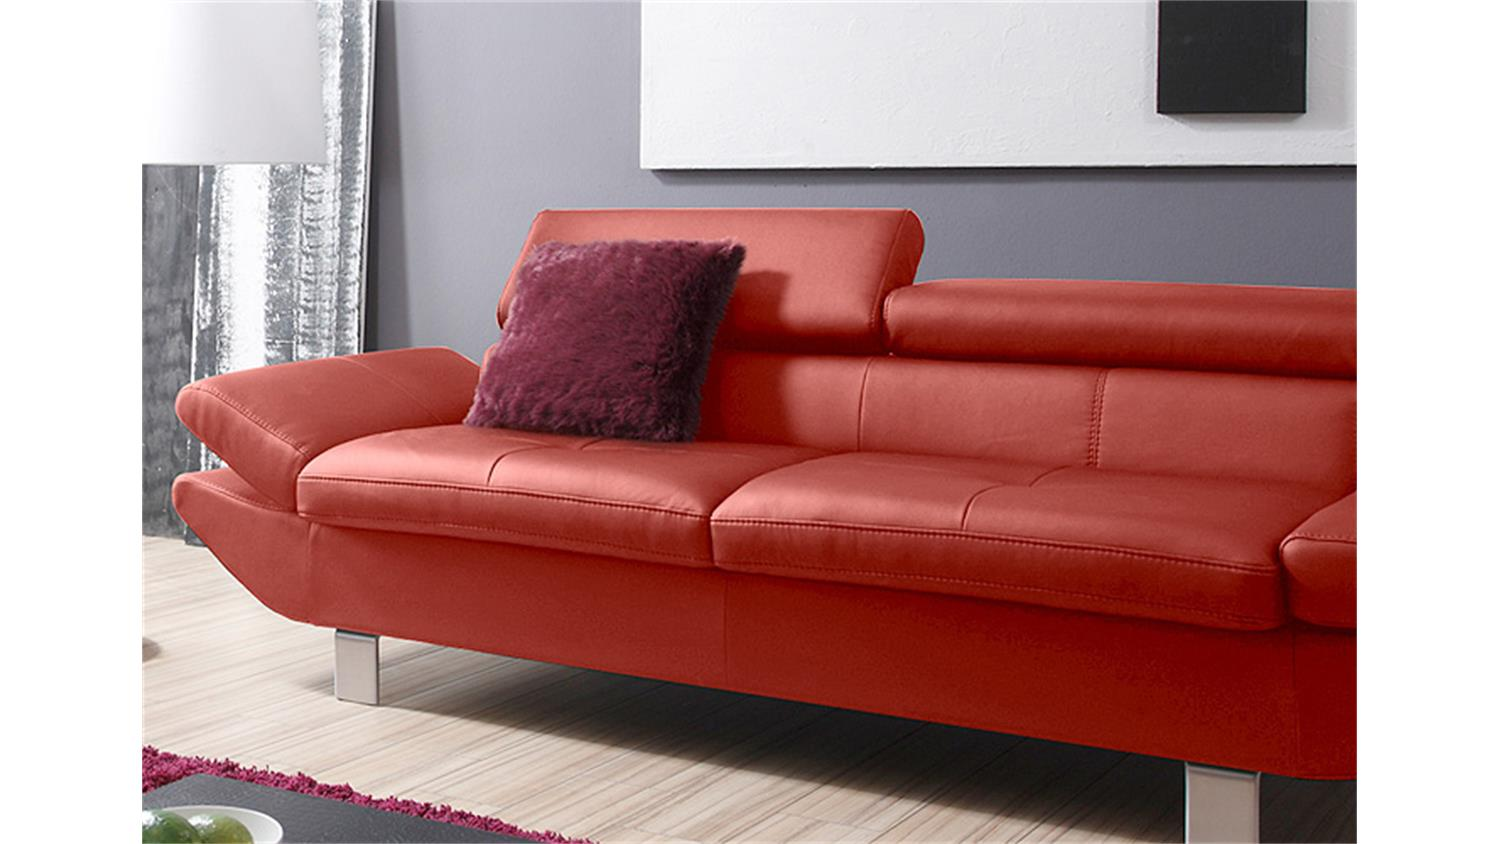 Sofa garnitur carrier polsterm bel mit relaxfunkion in rot for Sofa garnitur